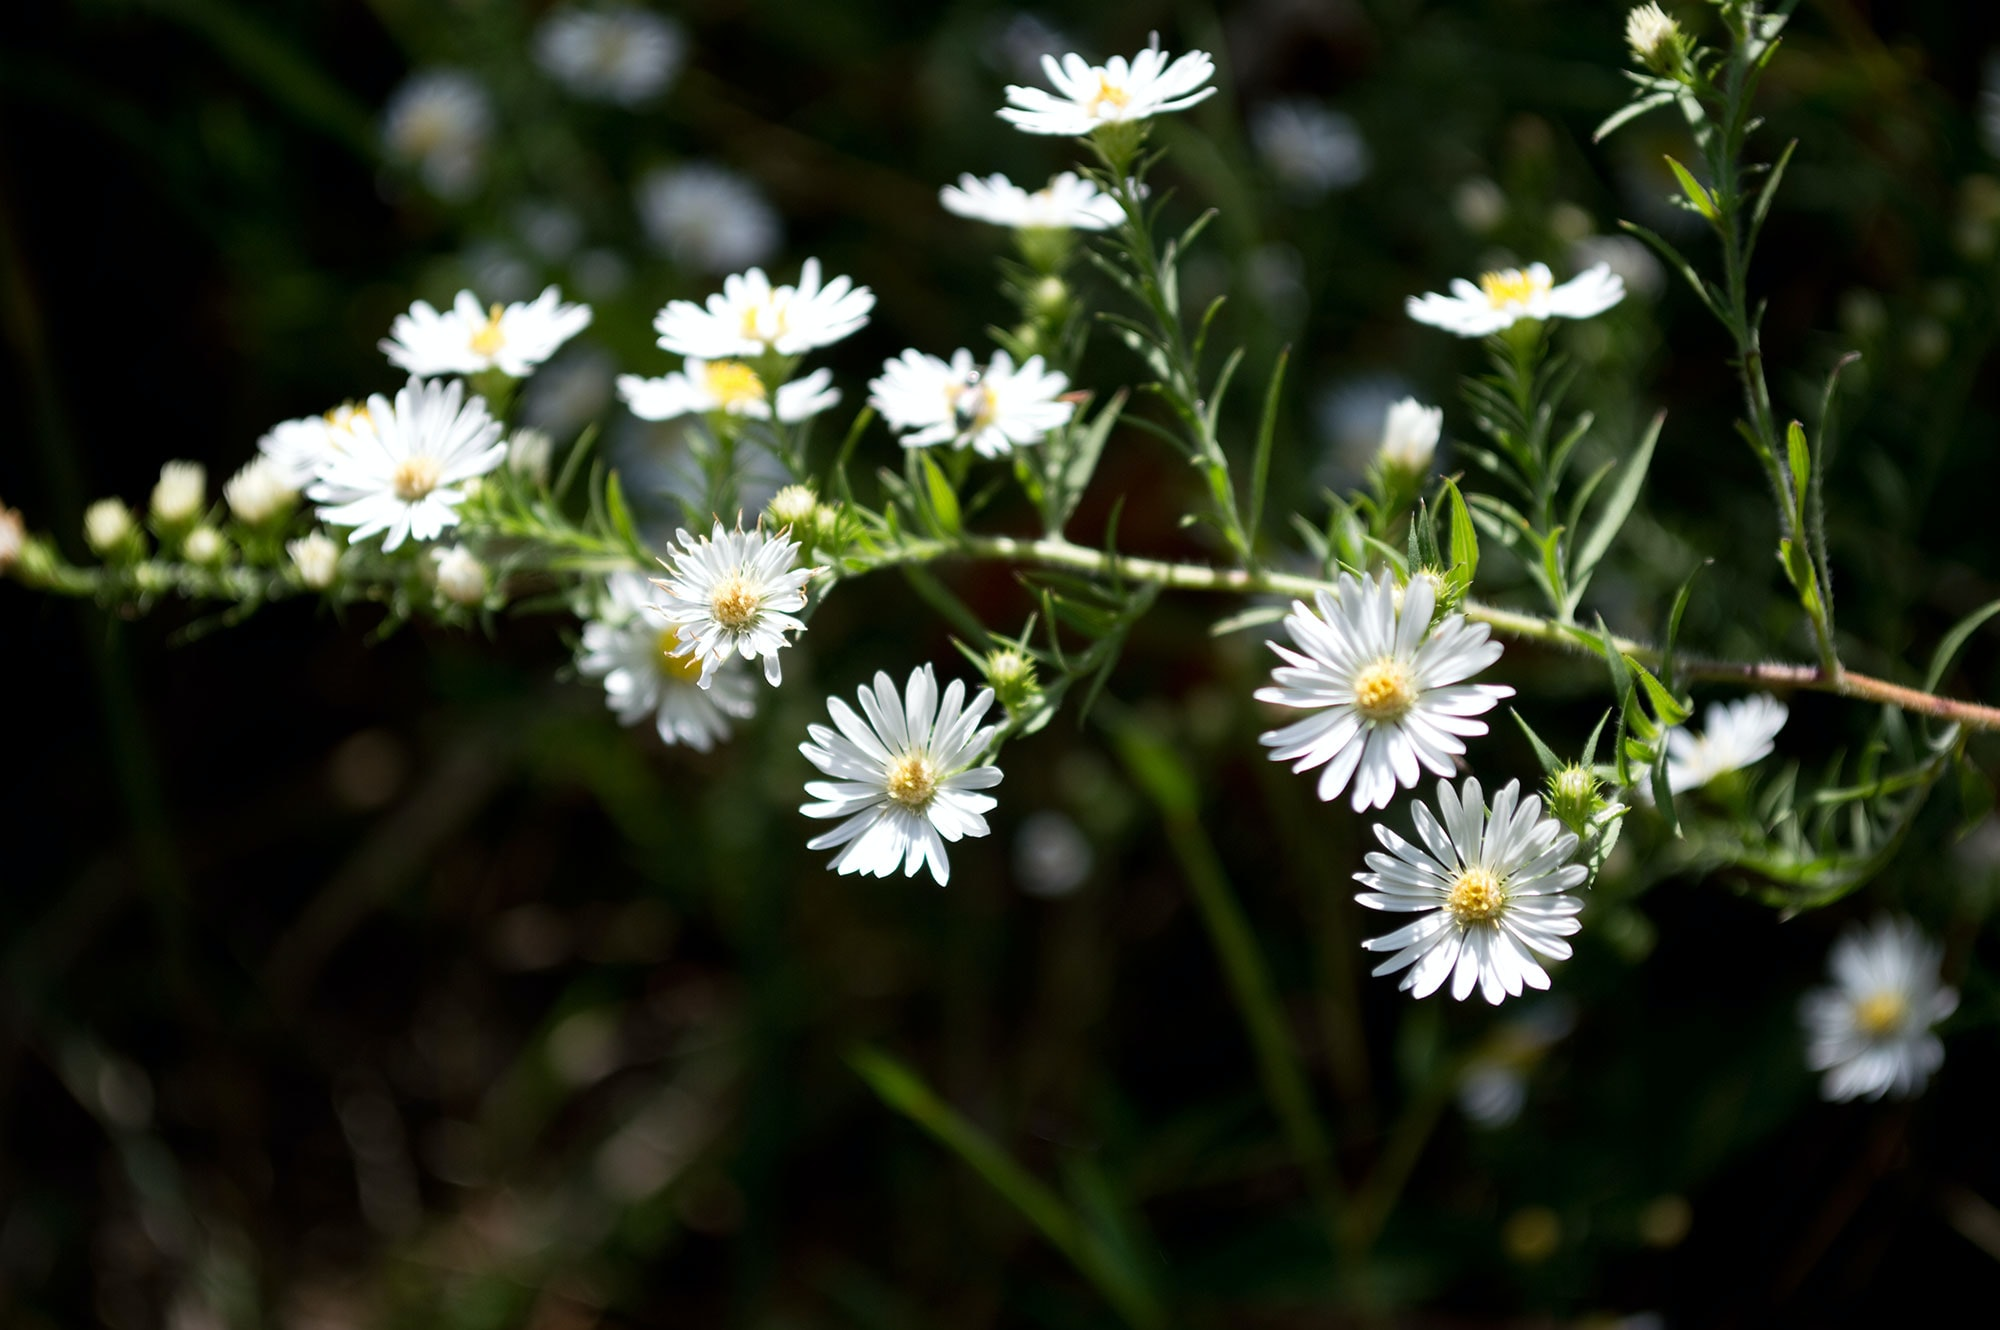 White daisy-like flowers on a long branch